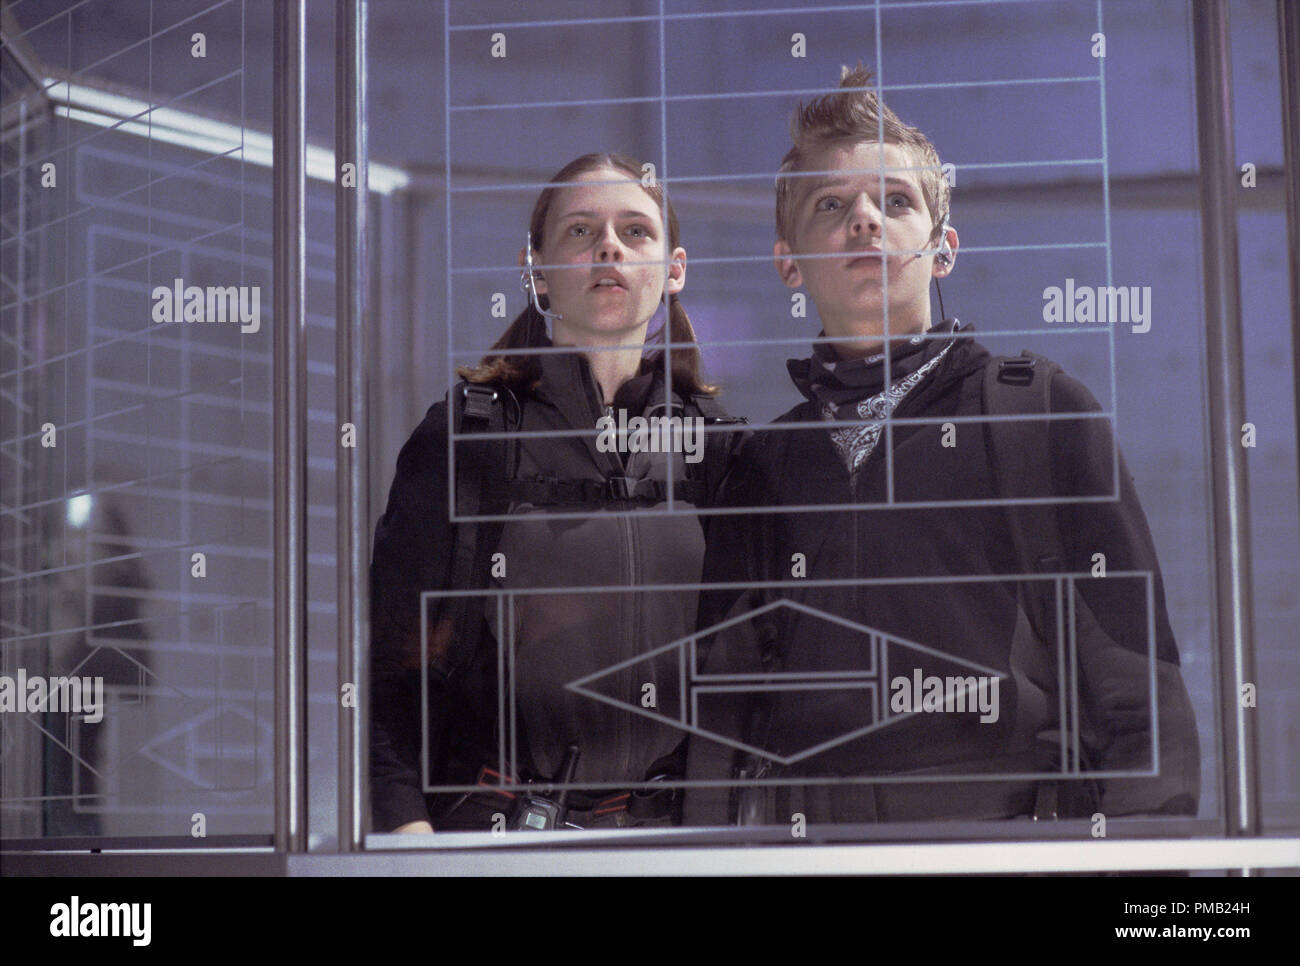 Kristen Stewart and Max Thieriot face some high-tech challenges in their daring mission.  'Catch That Kid' (2003) - Stock Image